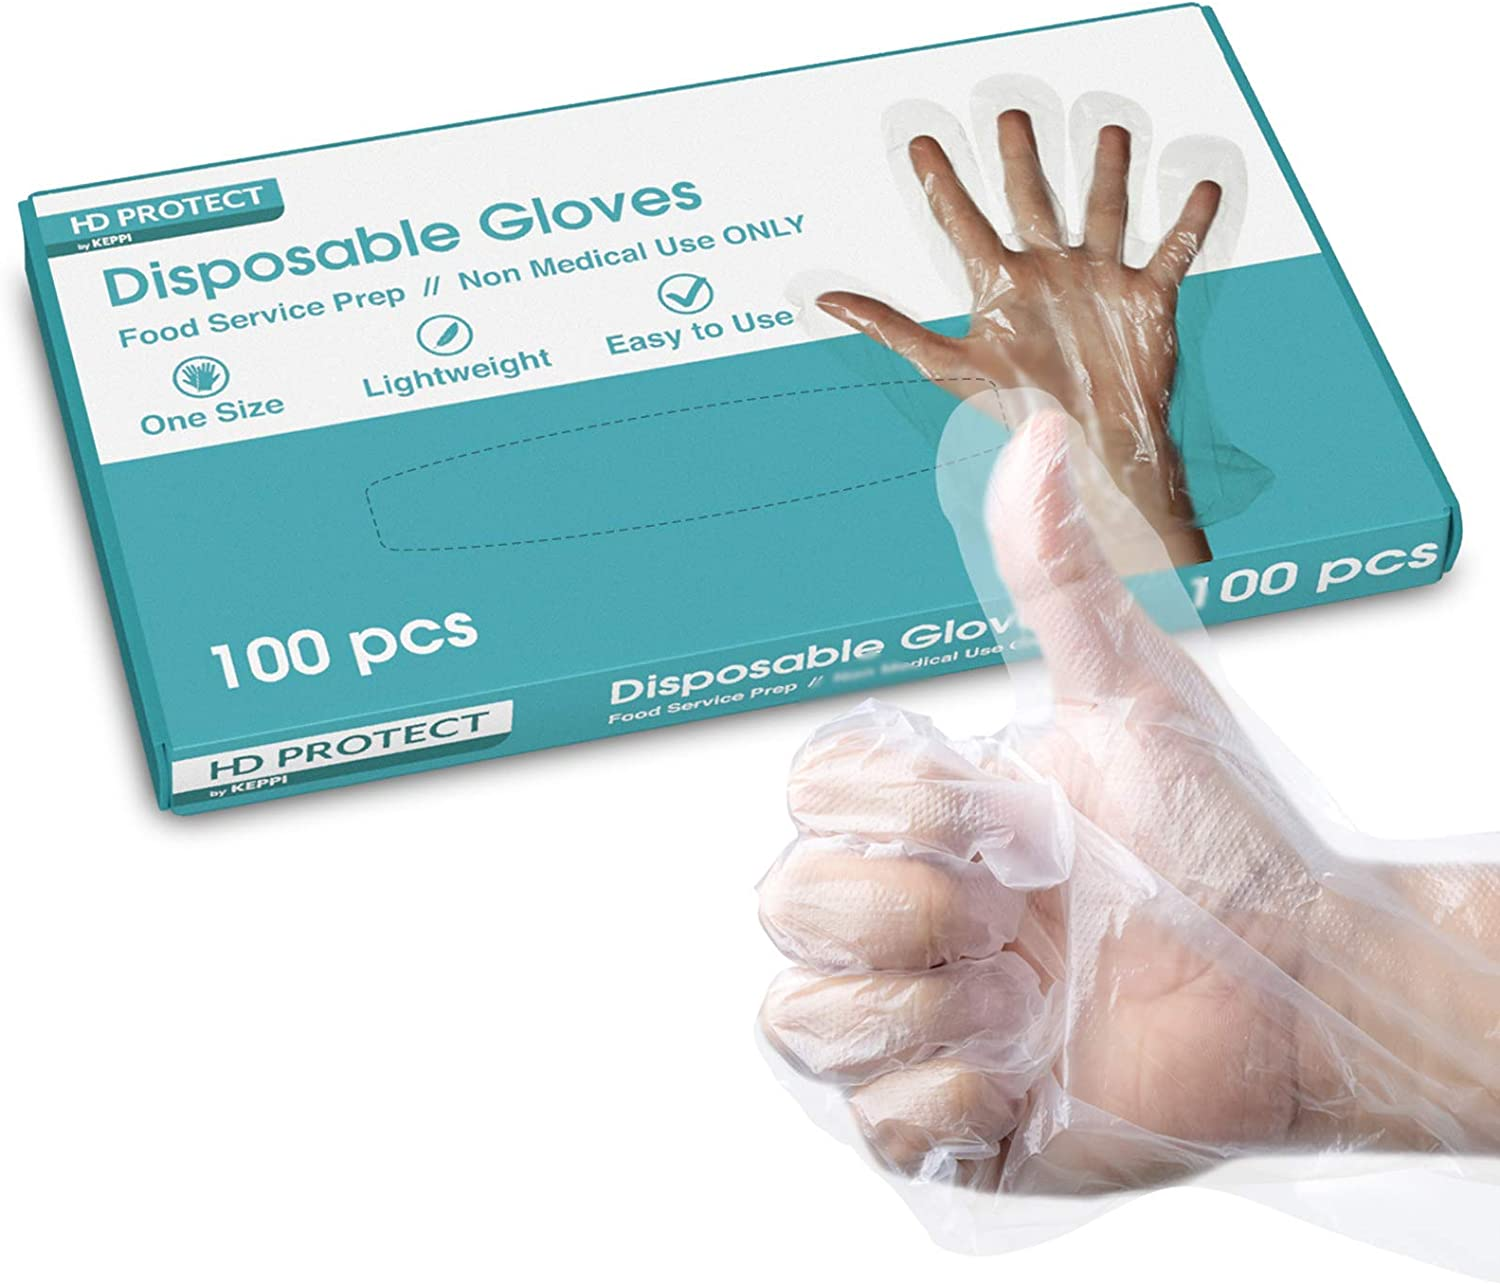 100 Pack Disposable Plastic Gloves - Food Prep Gloves Bulk Disposable Gloves Transparent Plastic Gloves for Food Service, Cleaning, Food Handling, Shared Spaces - One Size Fits Most